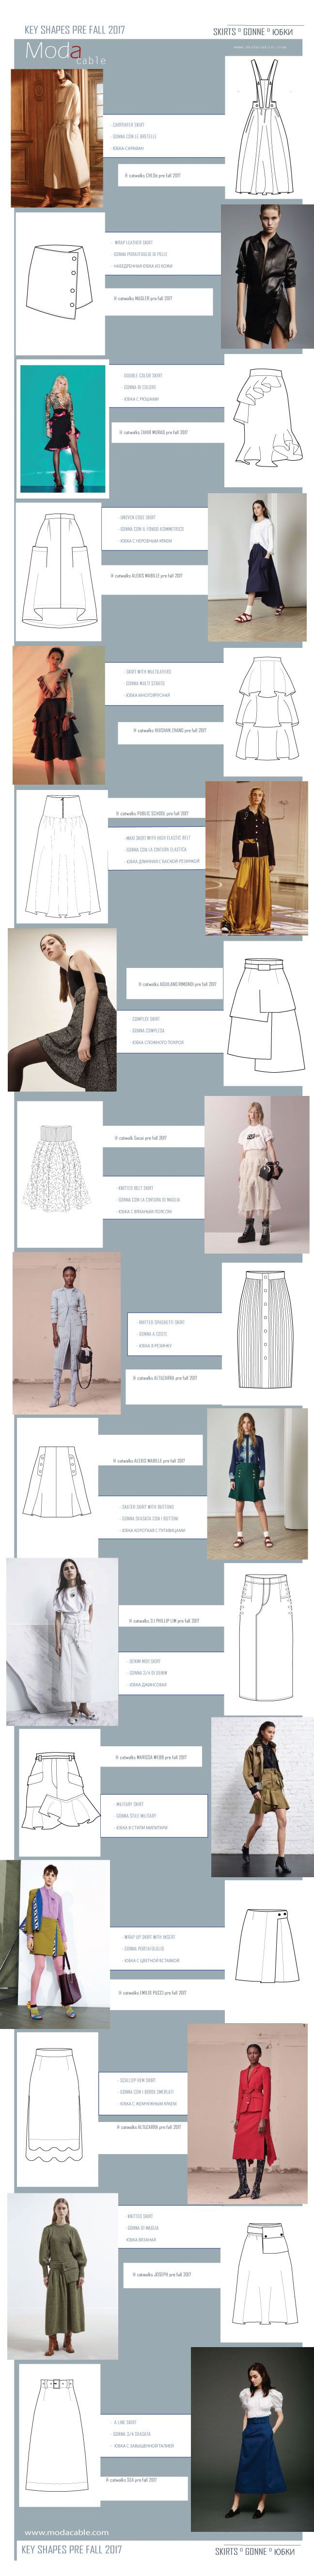 all the key shapes pre fall 2017 are already at modacable.com!!! subscribe free of charge!!